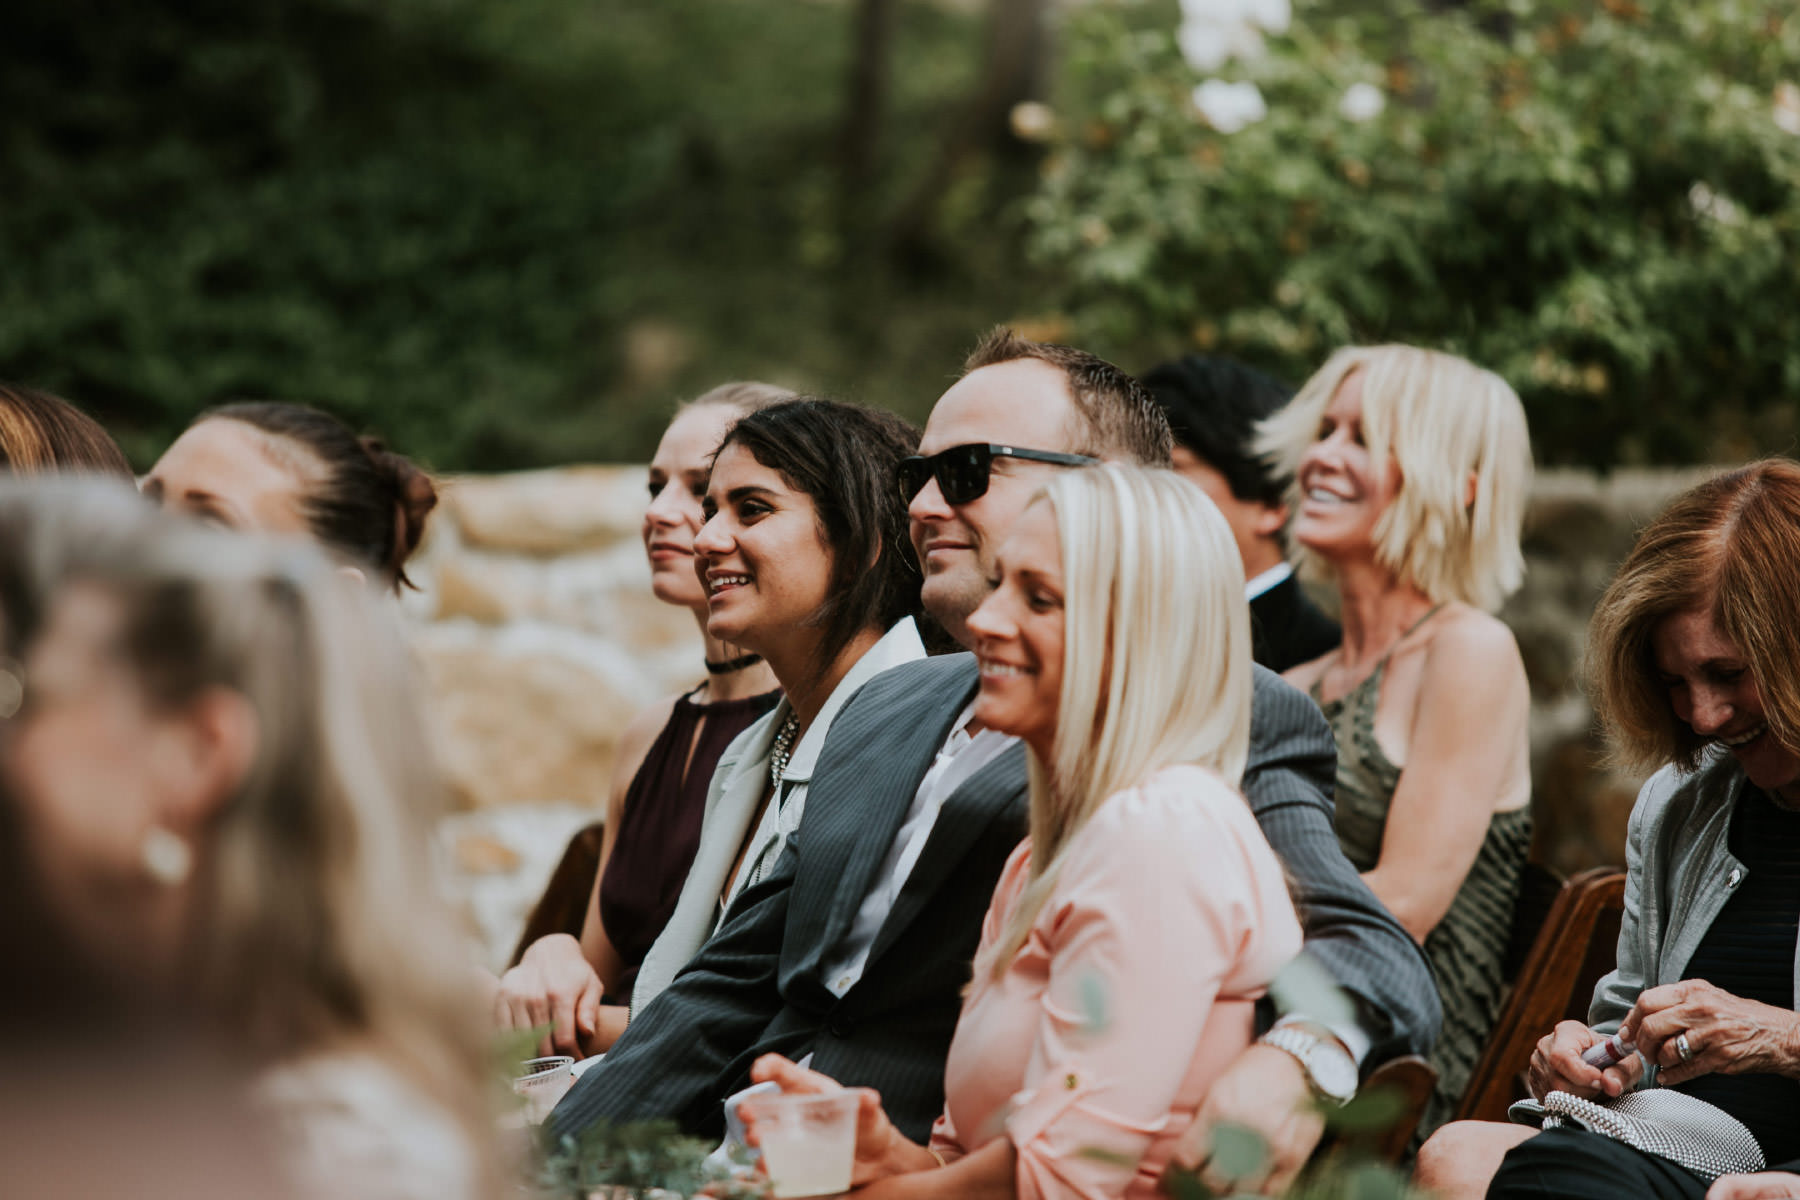 Guests laughing during ceremony